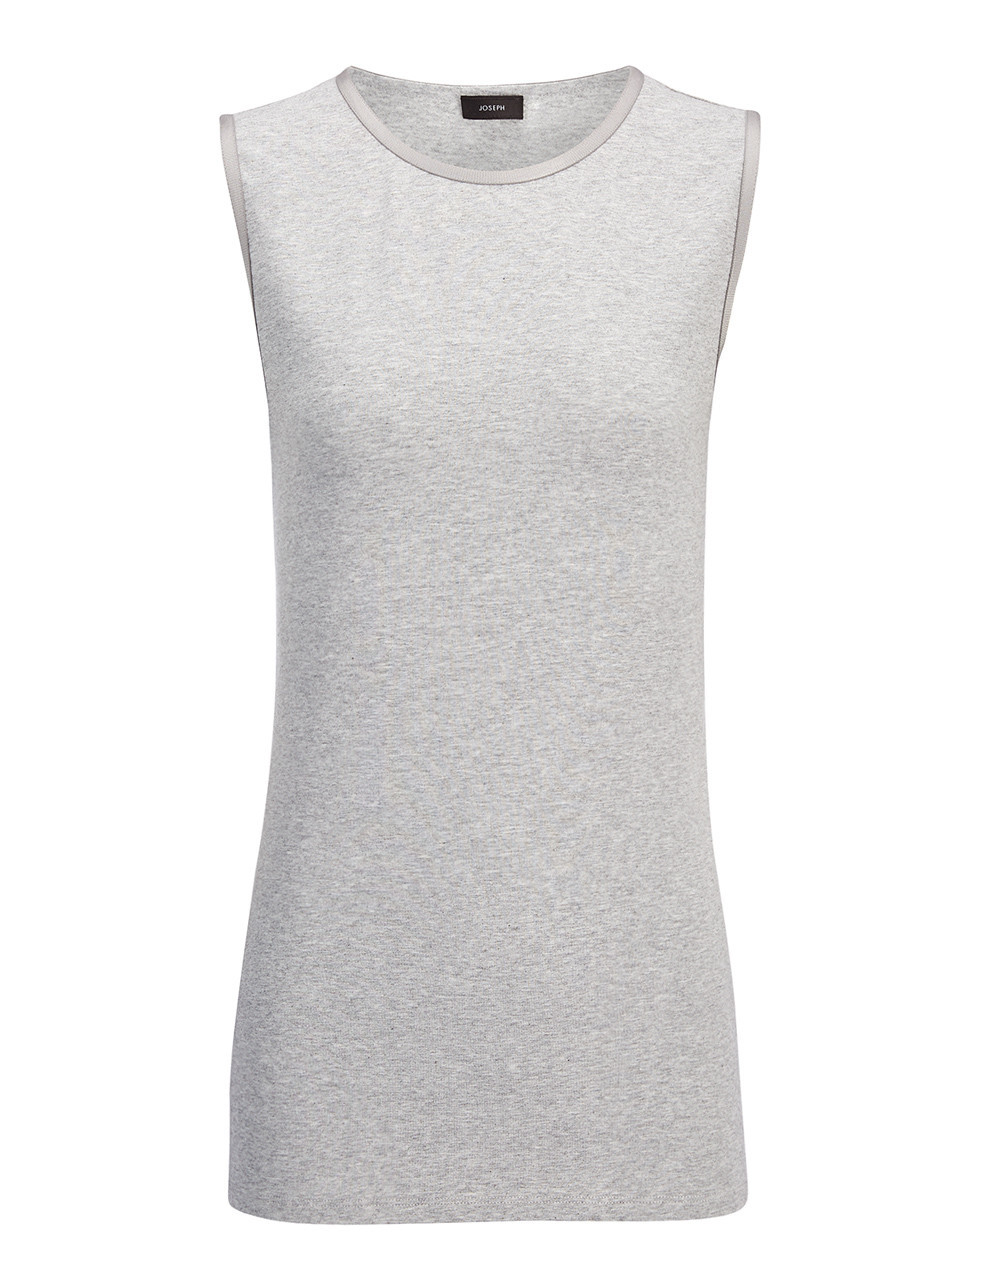 Cotton Lyocell Stretch Tank In Marble - neckline: round neck; pattern: plain; sleeve style: sleeveless; length: below the bottom; predominant colour: light grey; occasions: casual, creative work; style: top; fibres: cotton - 100%; fit: body skimming; sleeve length: sleeveless; pattern type: fabric; texture group: jersey - stretchy/drapey; season: s/s 2016; wardrobe: basic